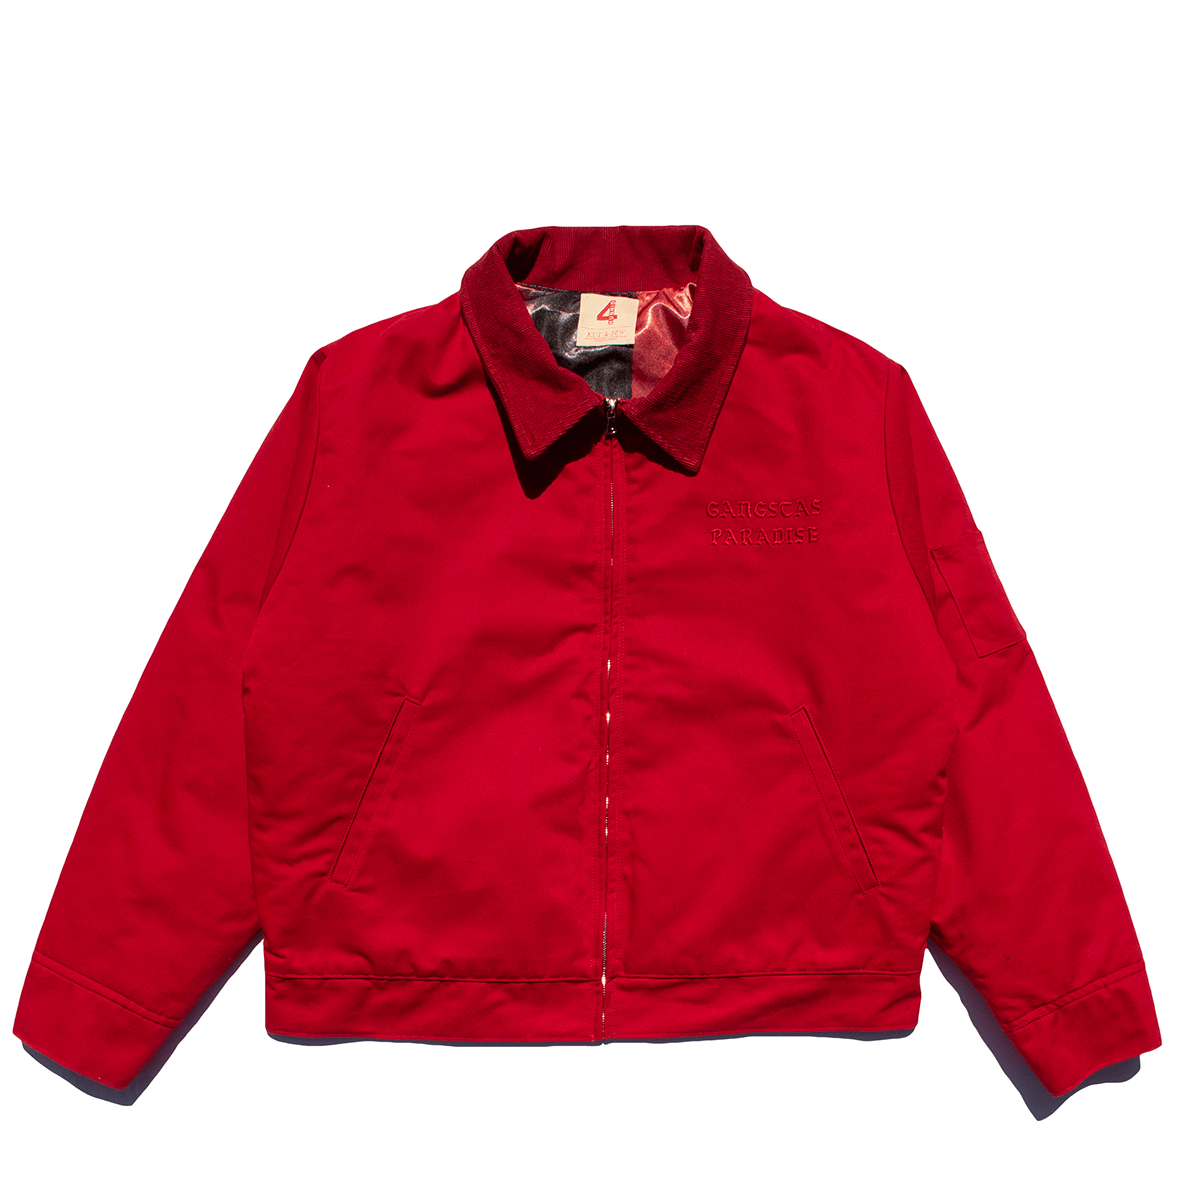 011a4145c54 Members Only Red Jacket